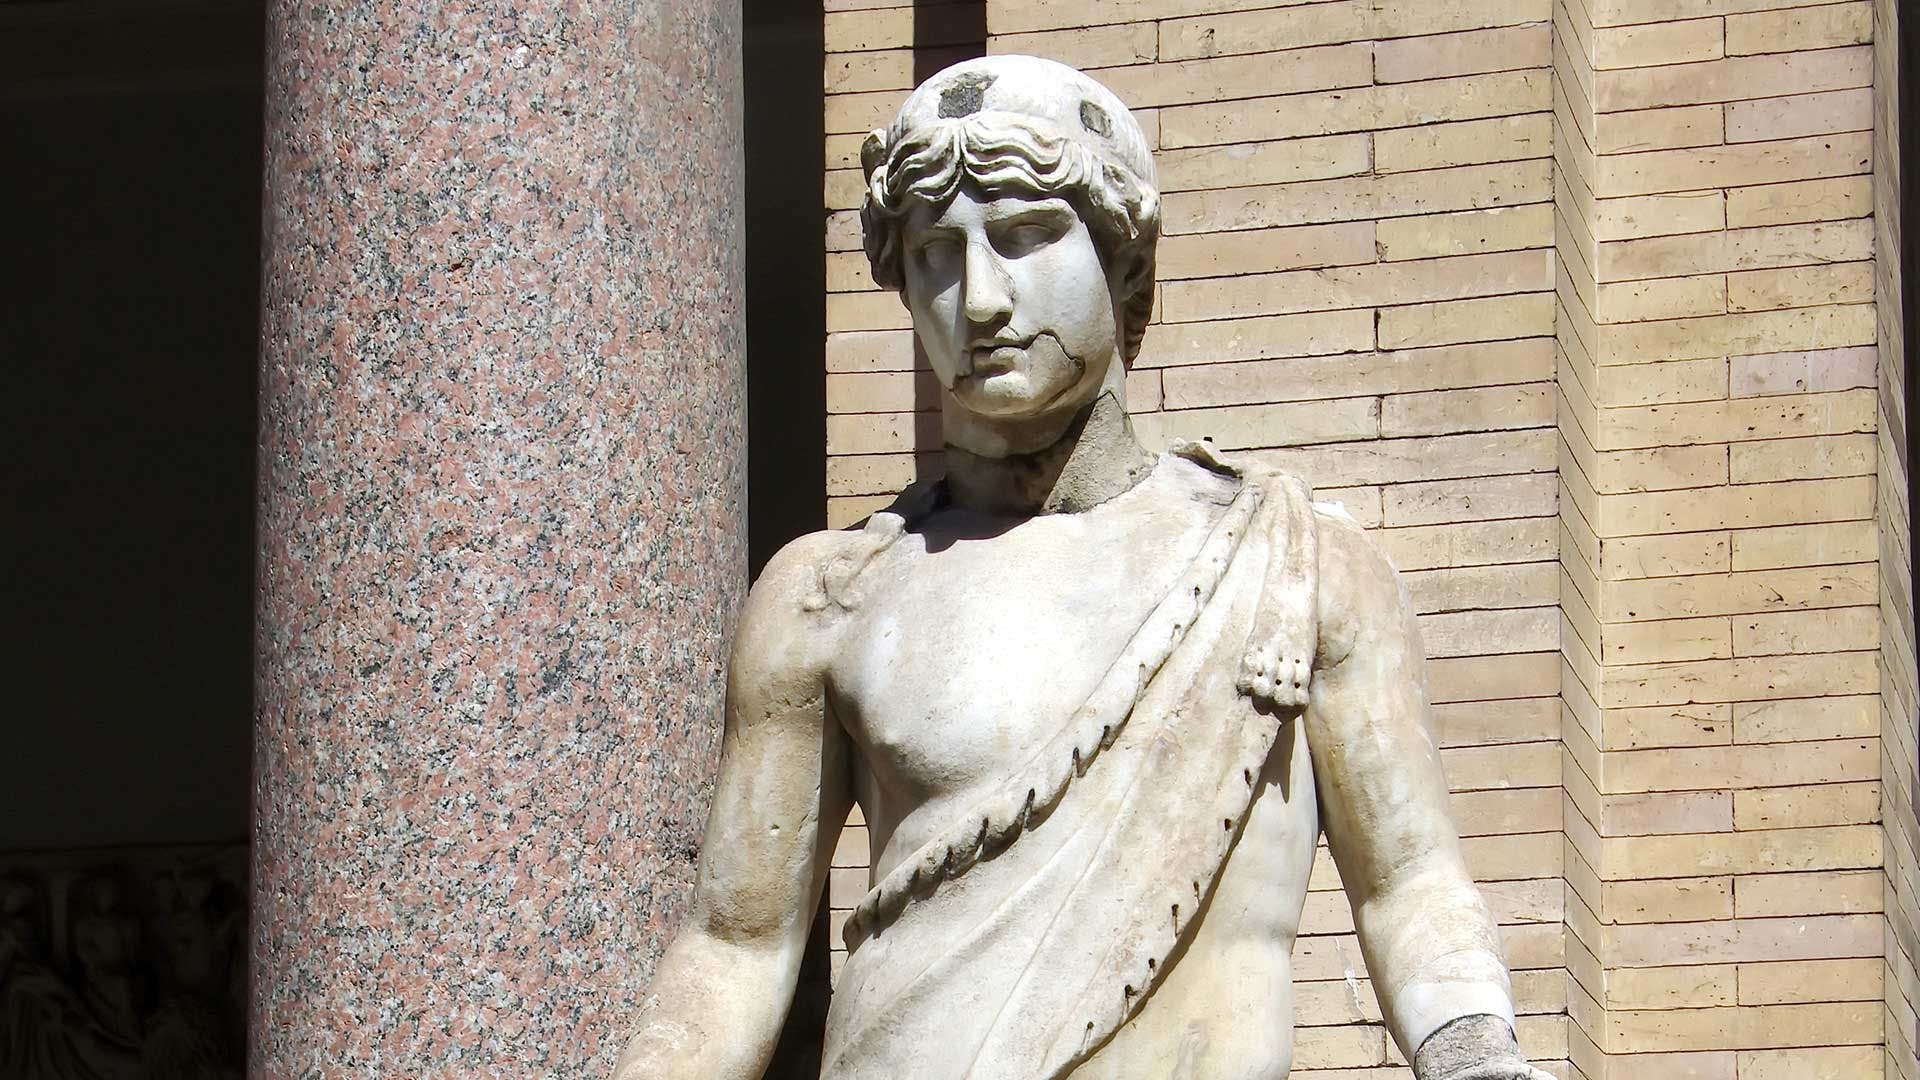 A statue of Adonis